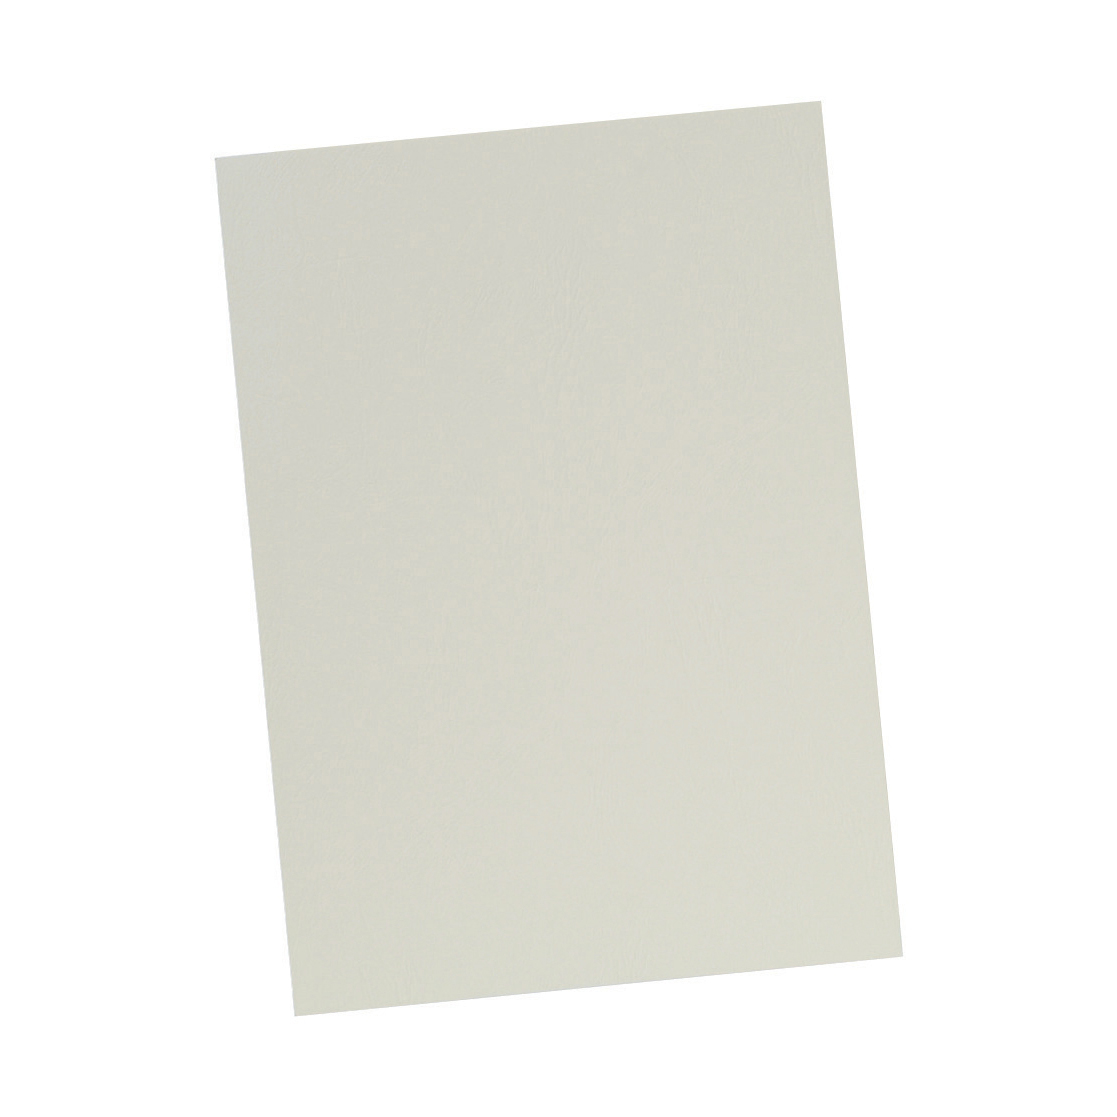 Cover Boards 5 Star Office Binding Covers 240gsm Leathergrain A4 Ivory Pack 100